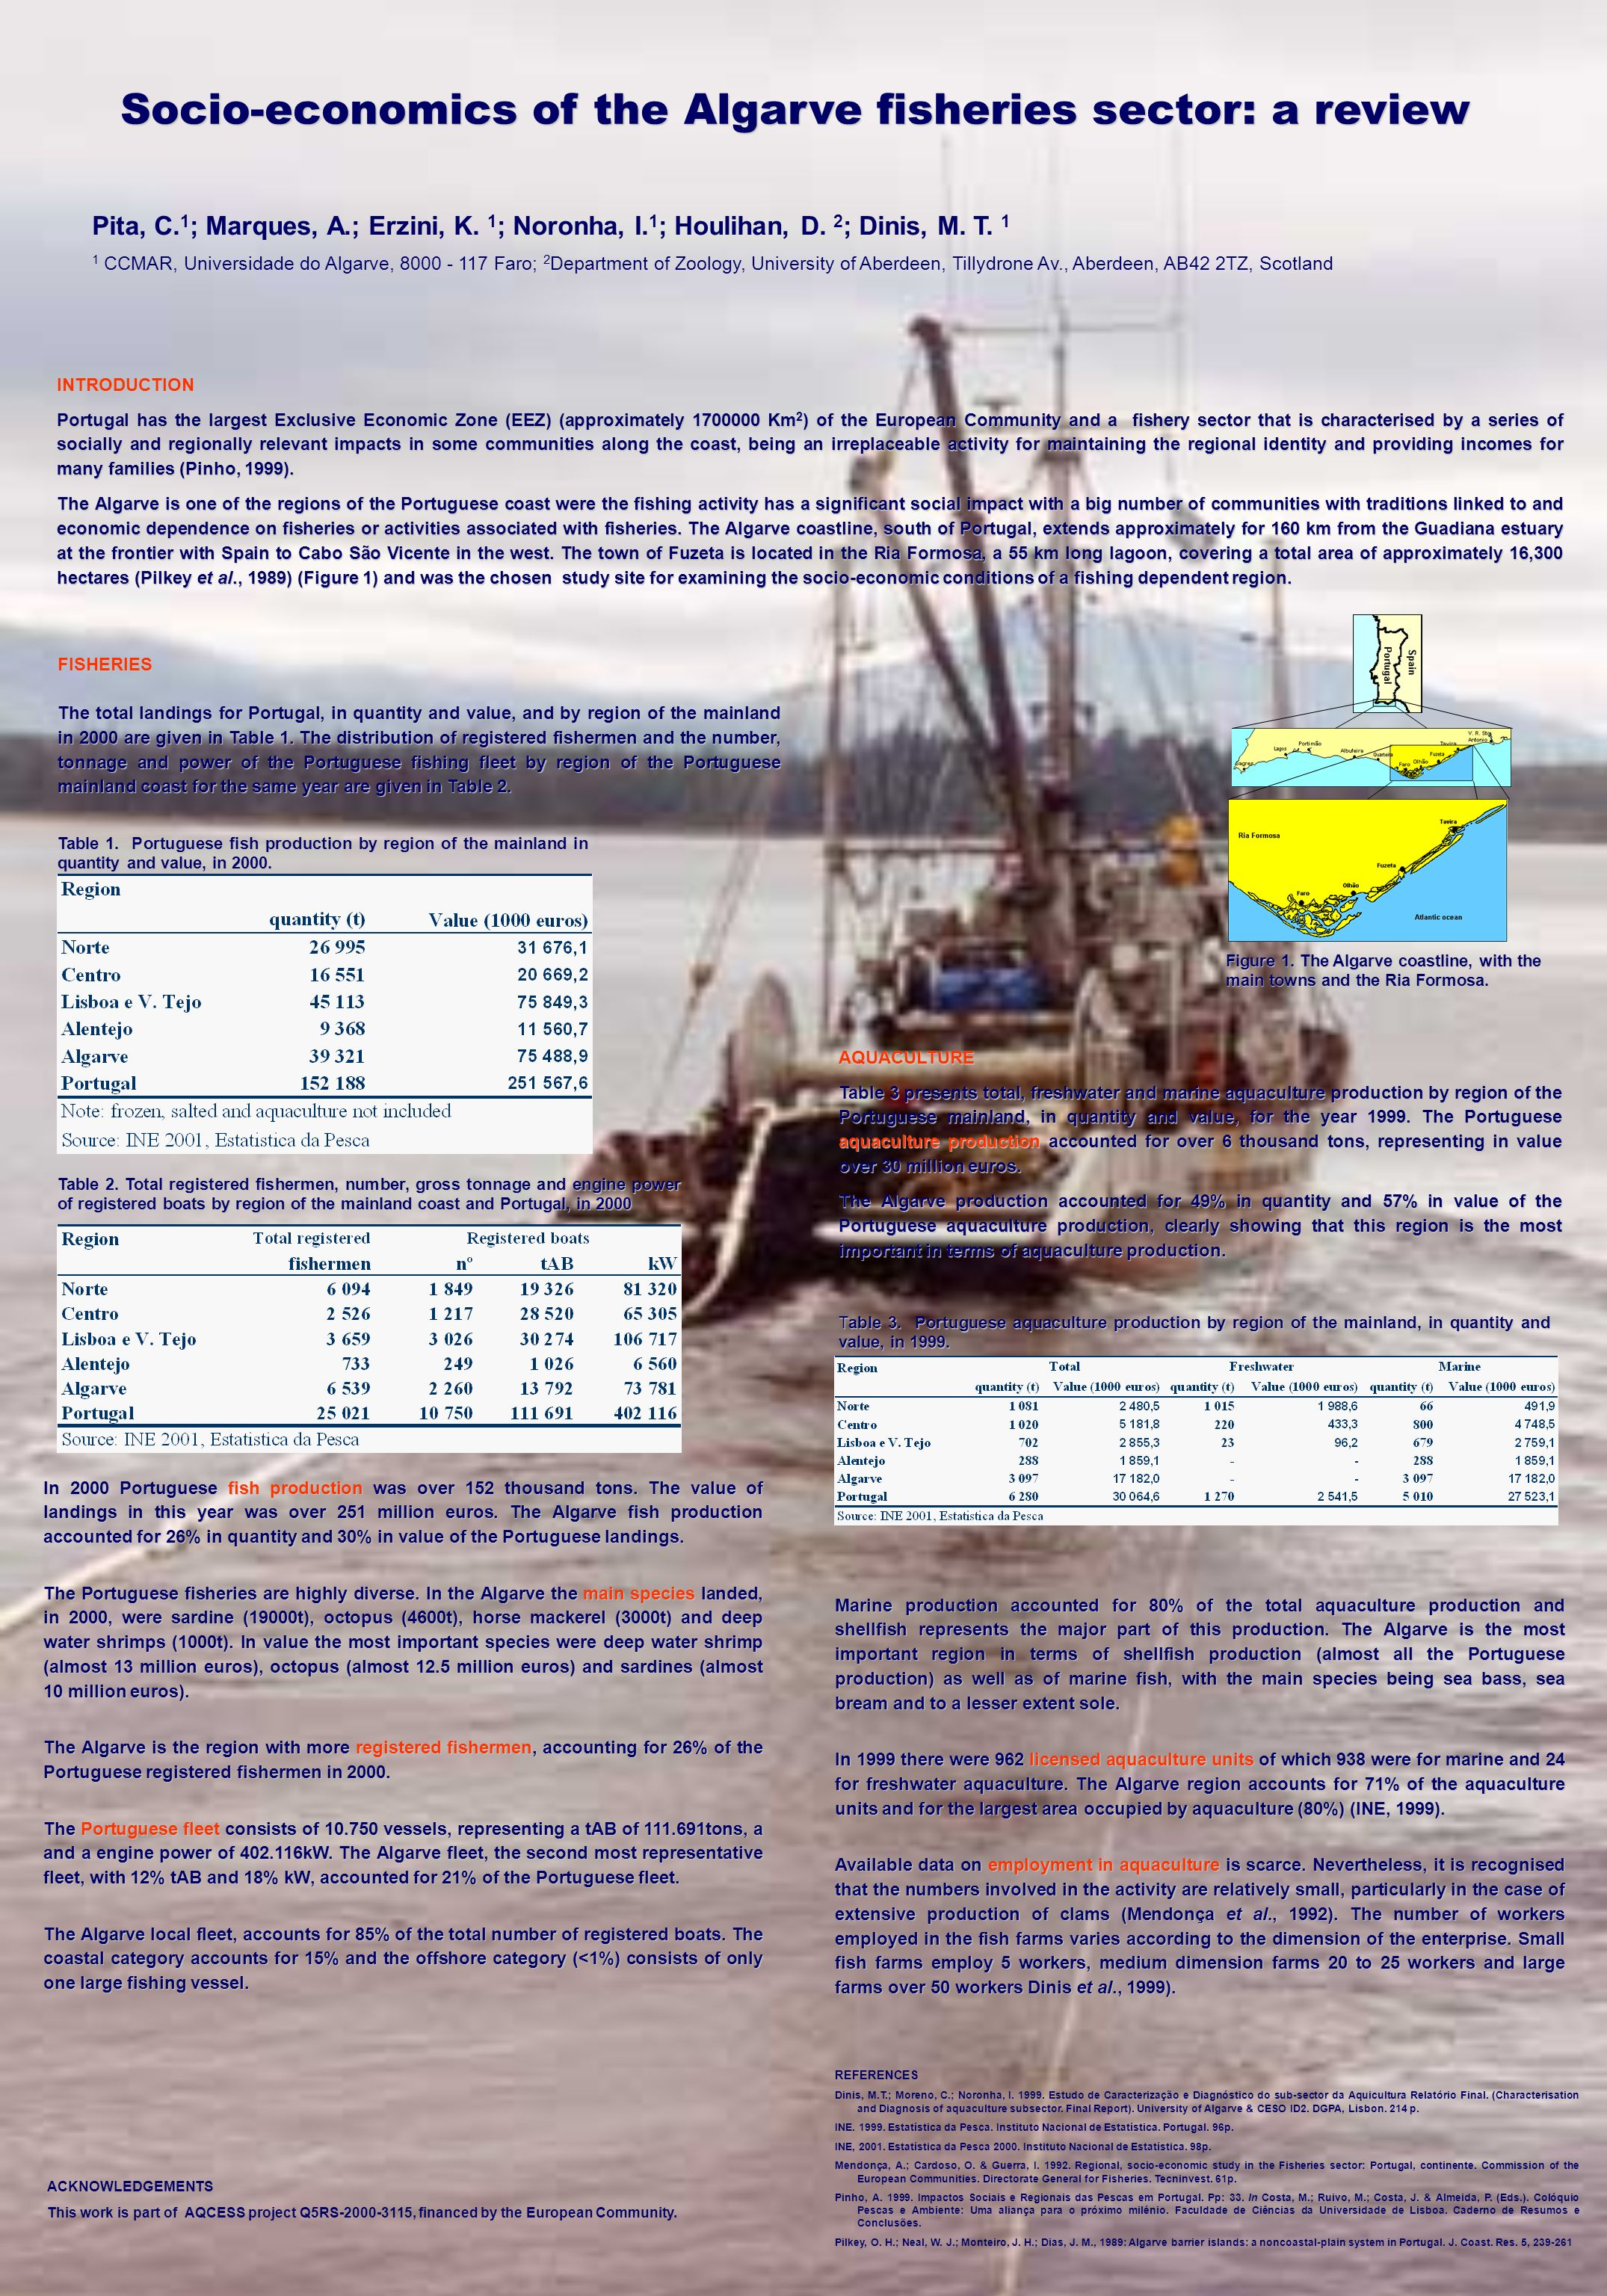 Socio-economics of the Algarve fisheries sector: a review